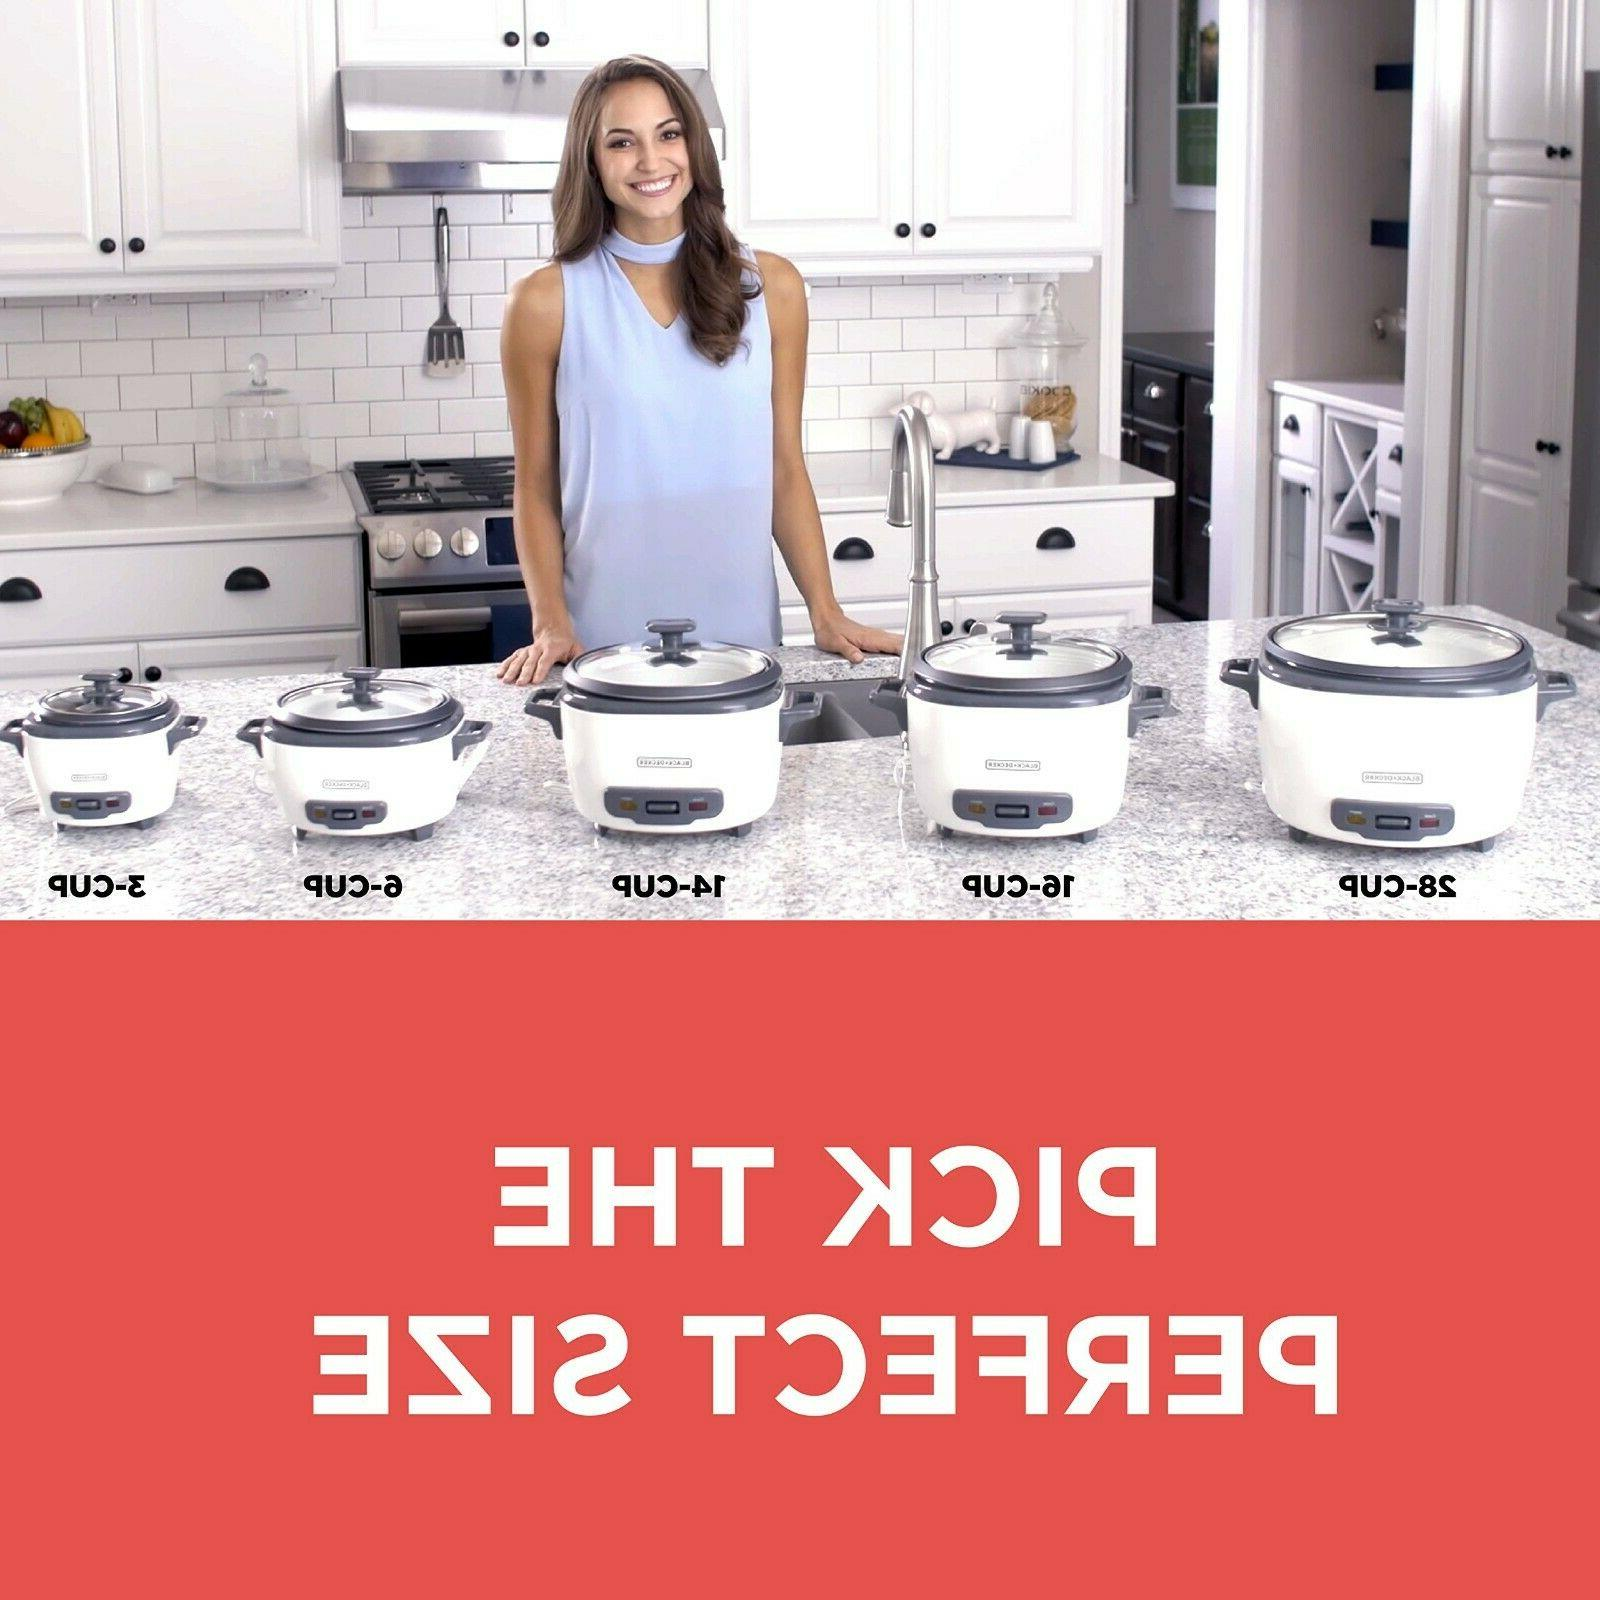 BLACK+DECKER RC506 Cooker 6-cup White and Food new